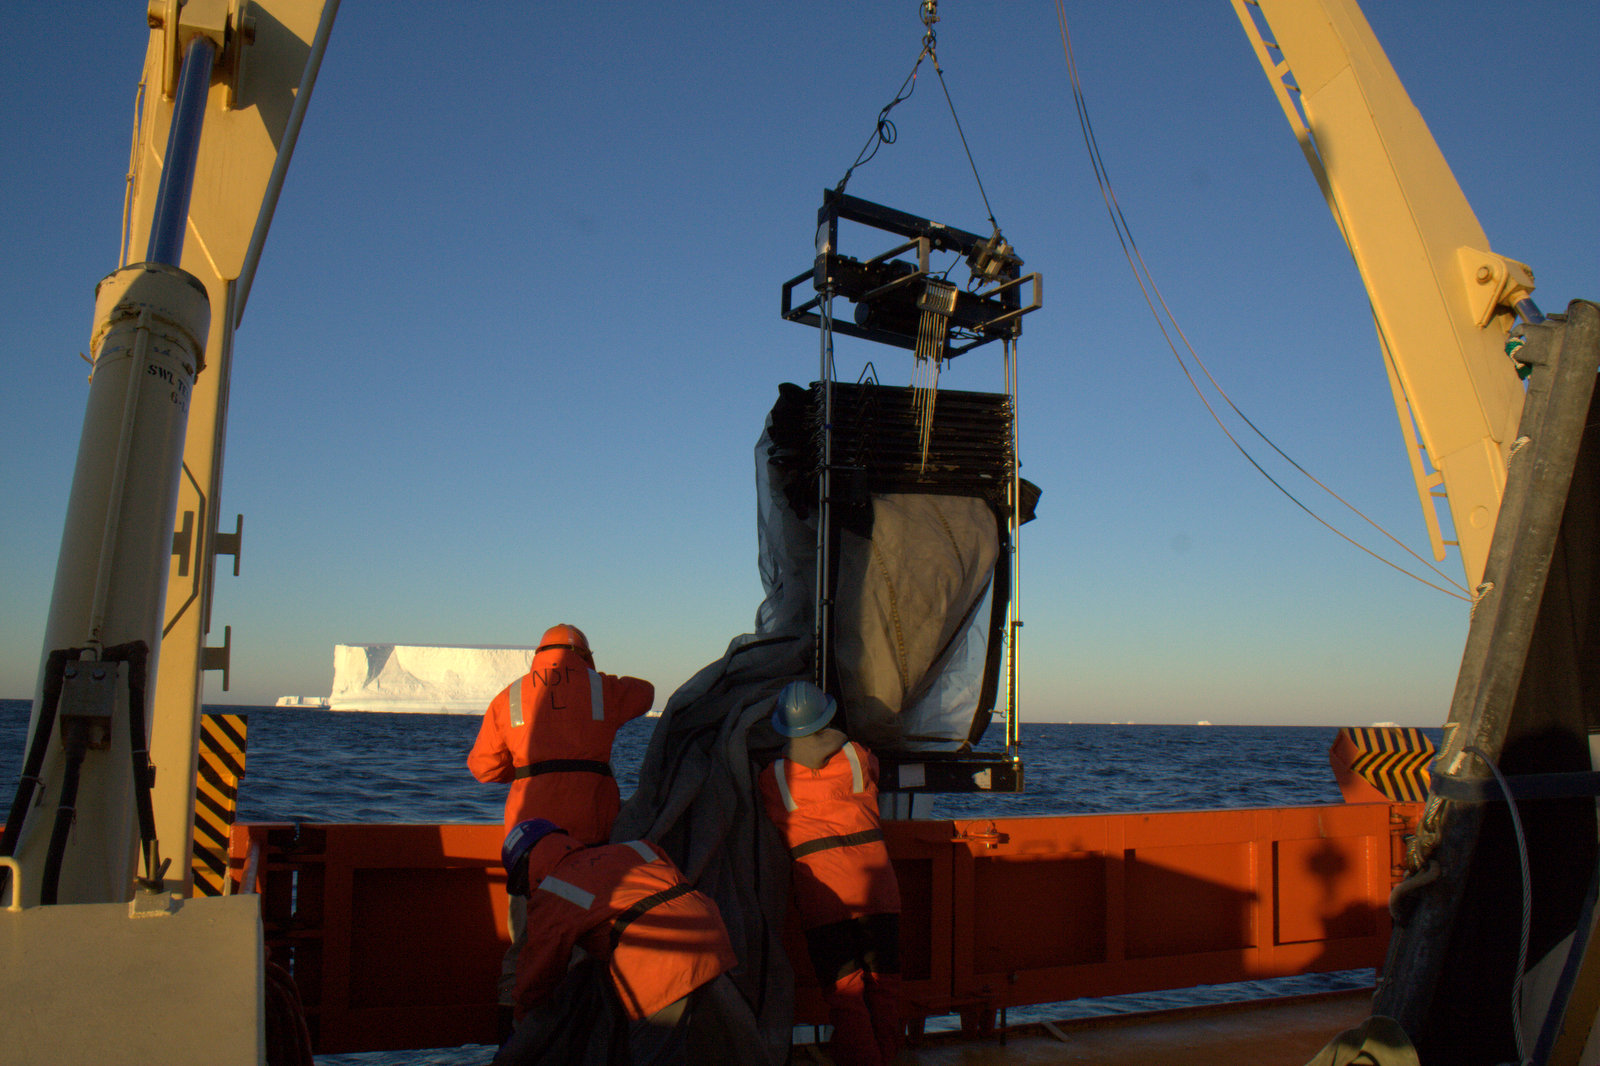 Scientists launch a Multiple Opening/Closing Net and Environmental Sensing System (MOCNESS) from the R/V Gould off the West Antarctic Peninsula. When towed behind a research vessel, the system's nets collect plankton while sensors provide real-time information about the physical properties of the seawater. Photo: Naomi Shelton/LDEO